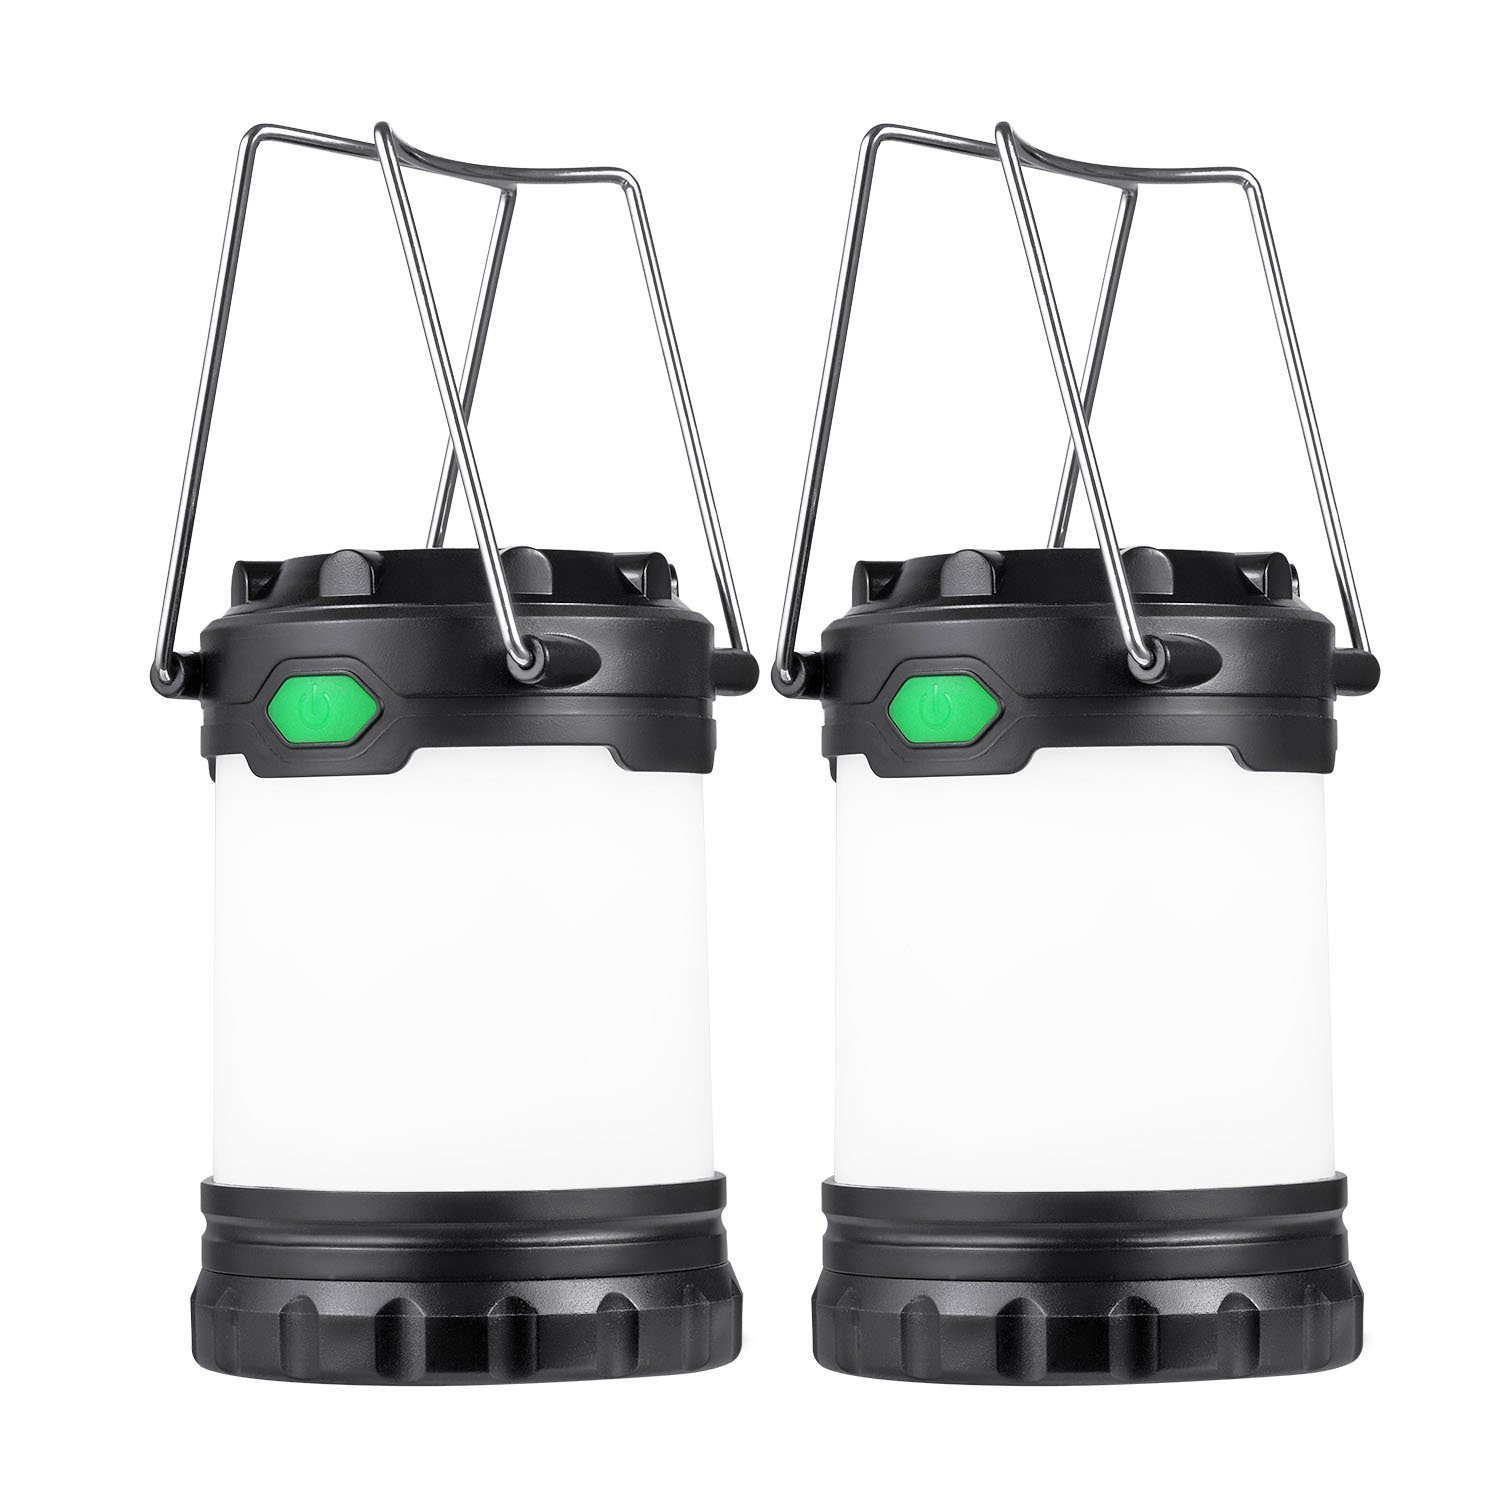 Hillmax 2 Pack Camping Lantern with 3 LED Modes White Light,Warm Light and Mixture Portable Outdoor Light Operated by AAA or AA Batteries for Camping, Fishing and Emergency(Battery Included)